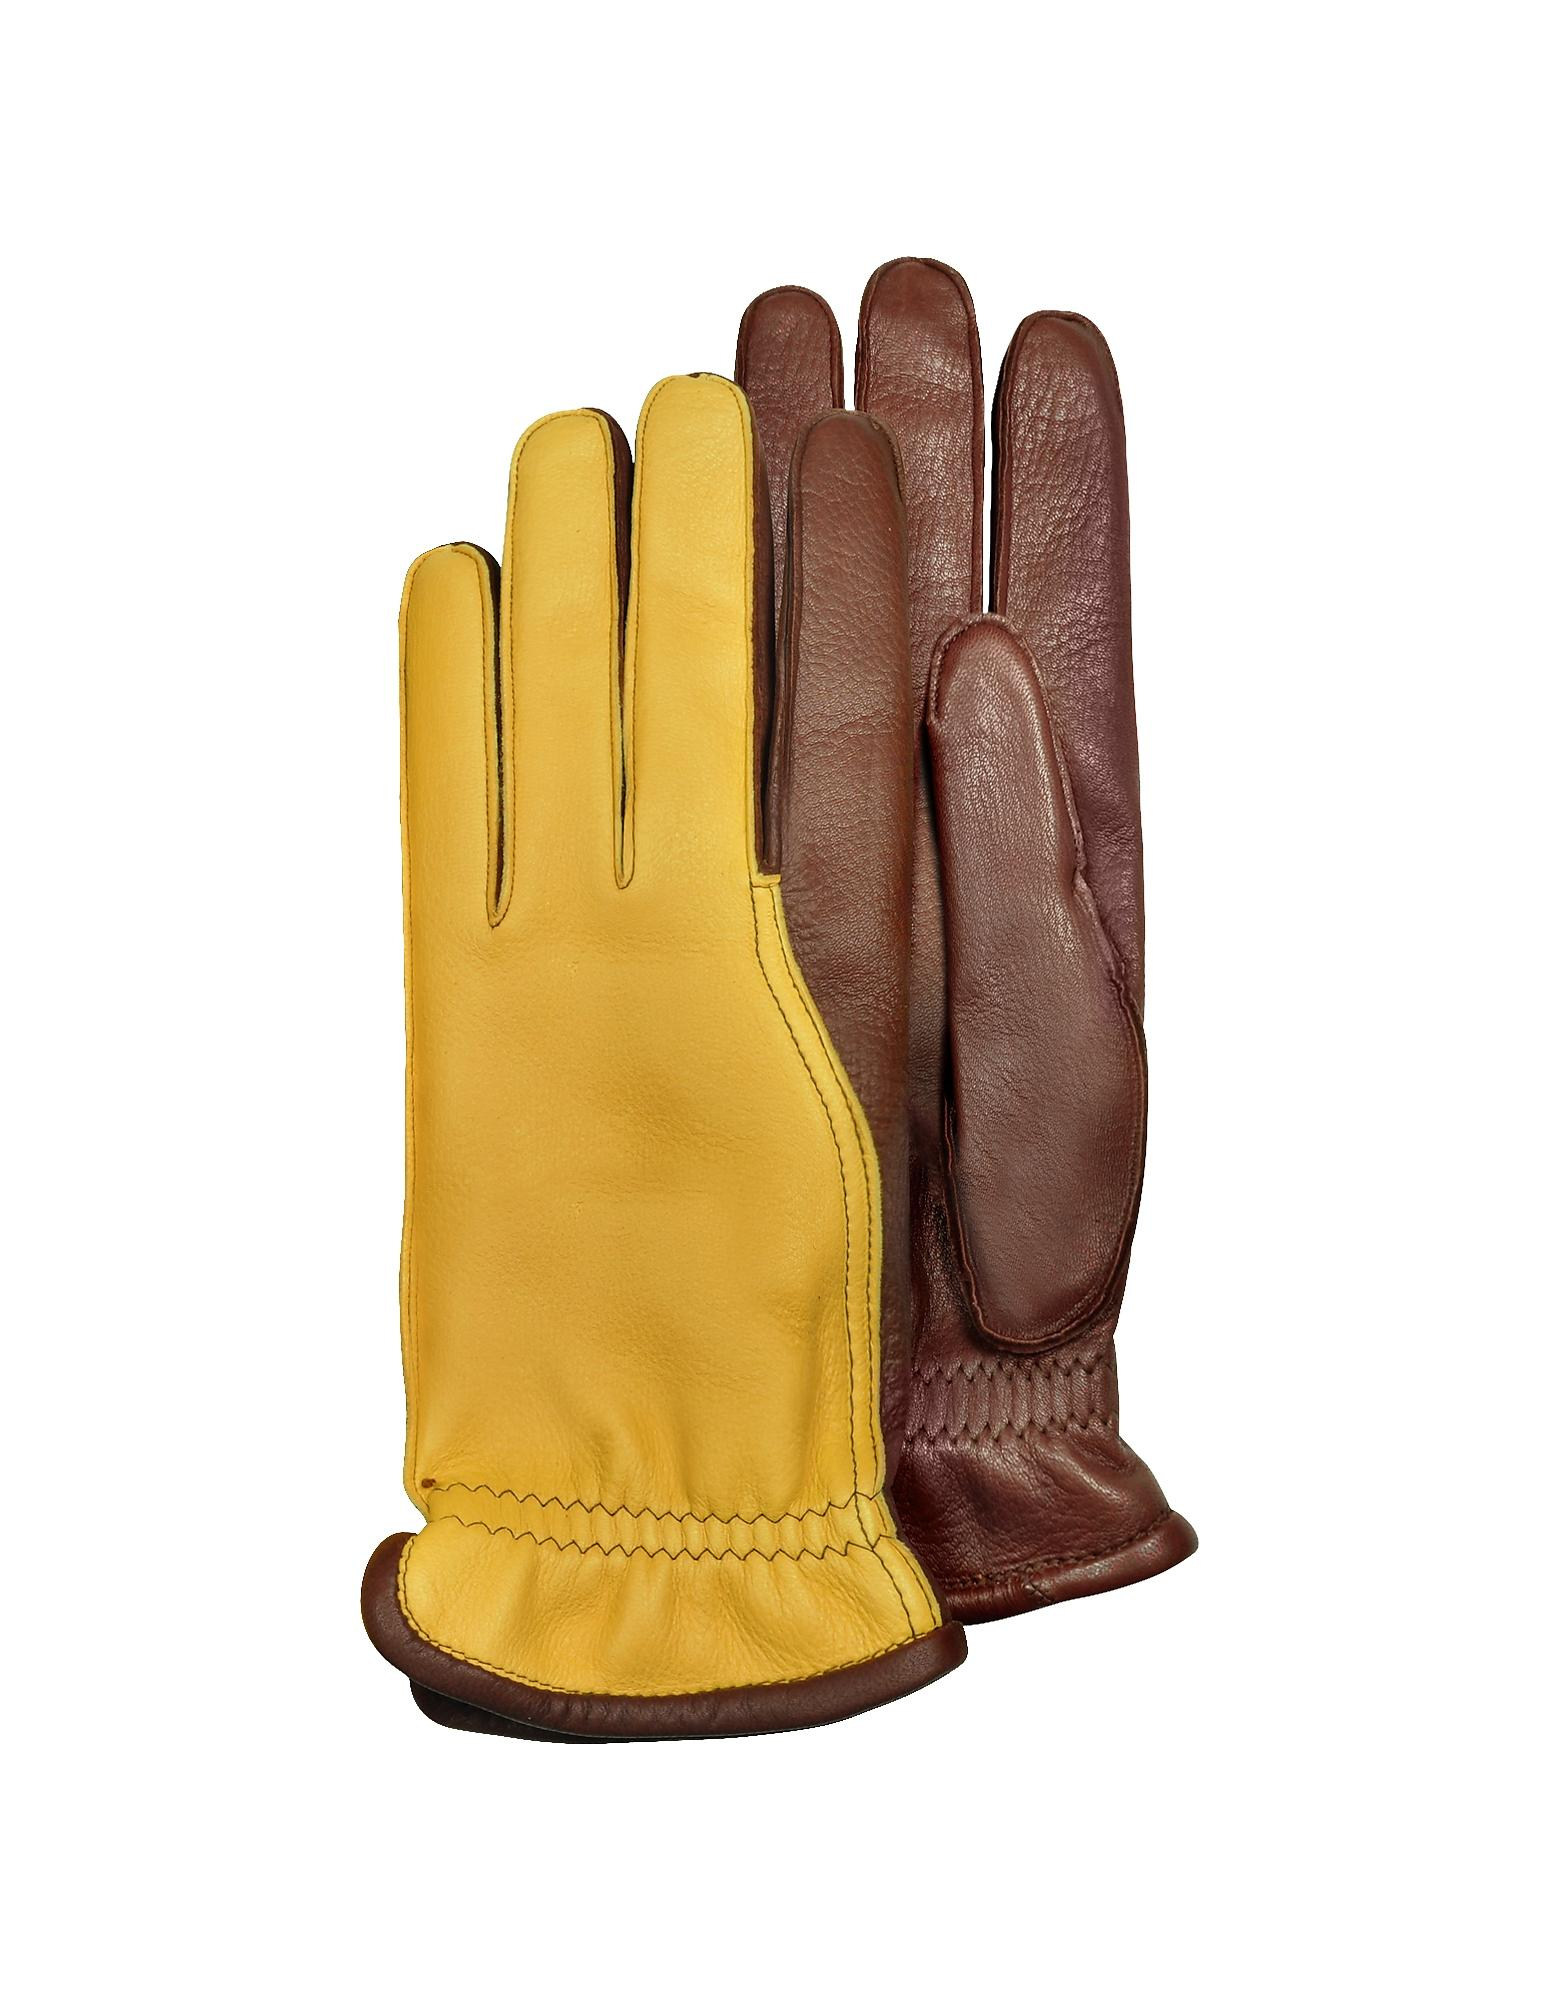 6194ce0c5b99 Pineider. Brown Men s Two-tone Deerskin Leather Gloves W  Cashmere Lining